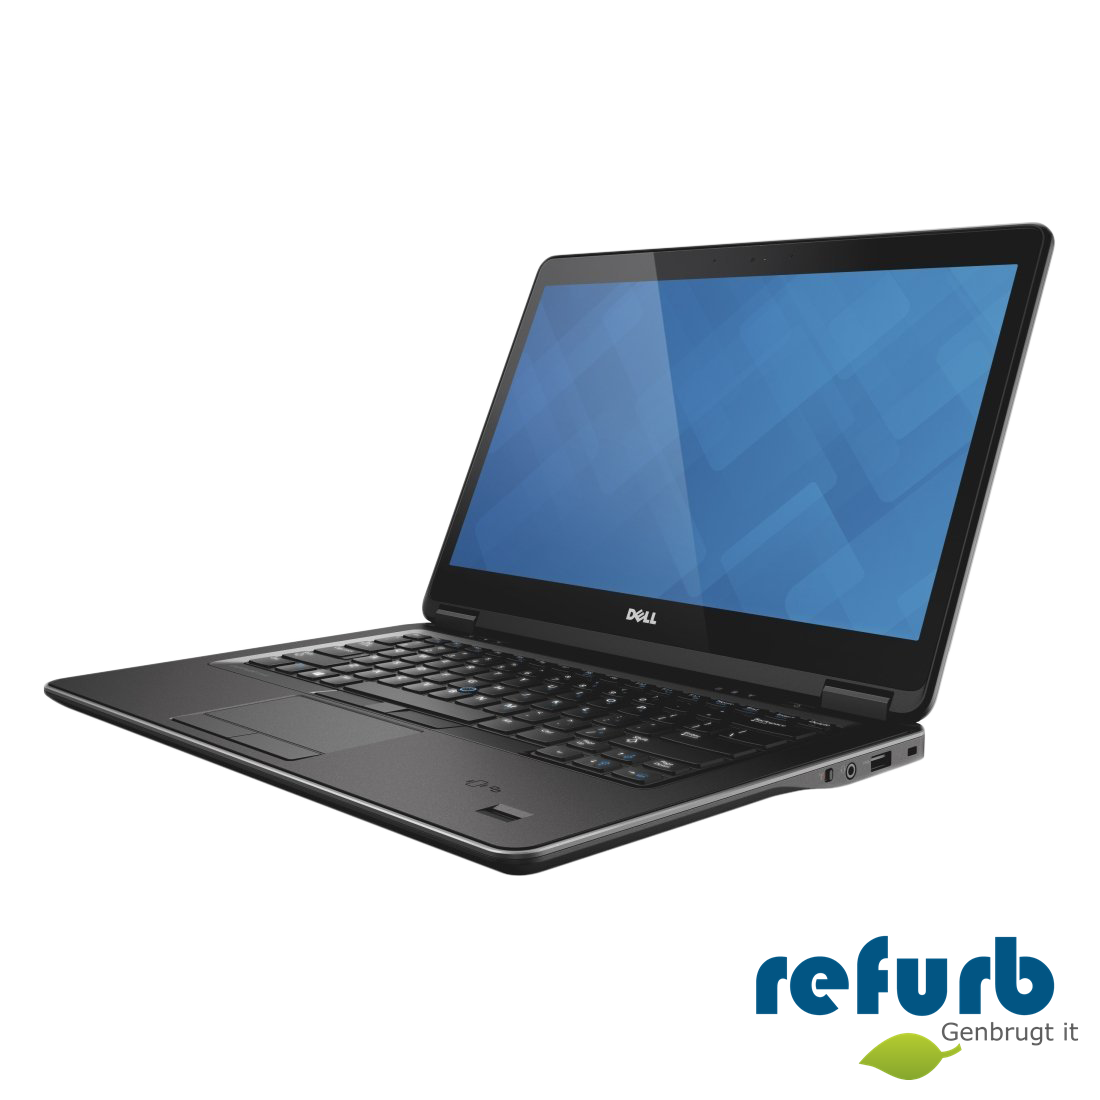 Dell – Dell latitude e7440 fra refurb